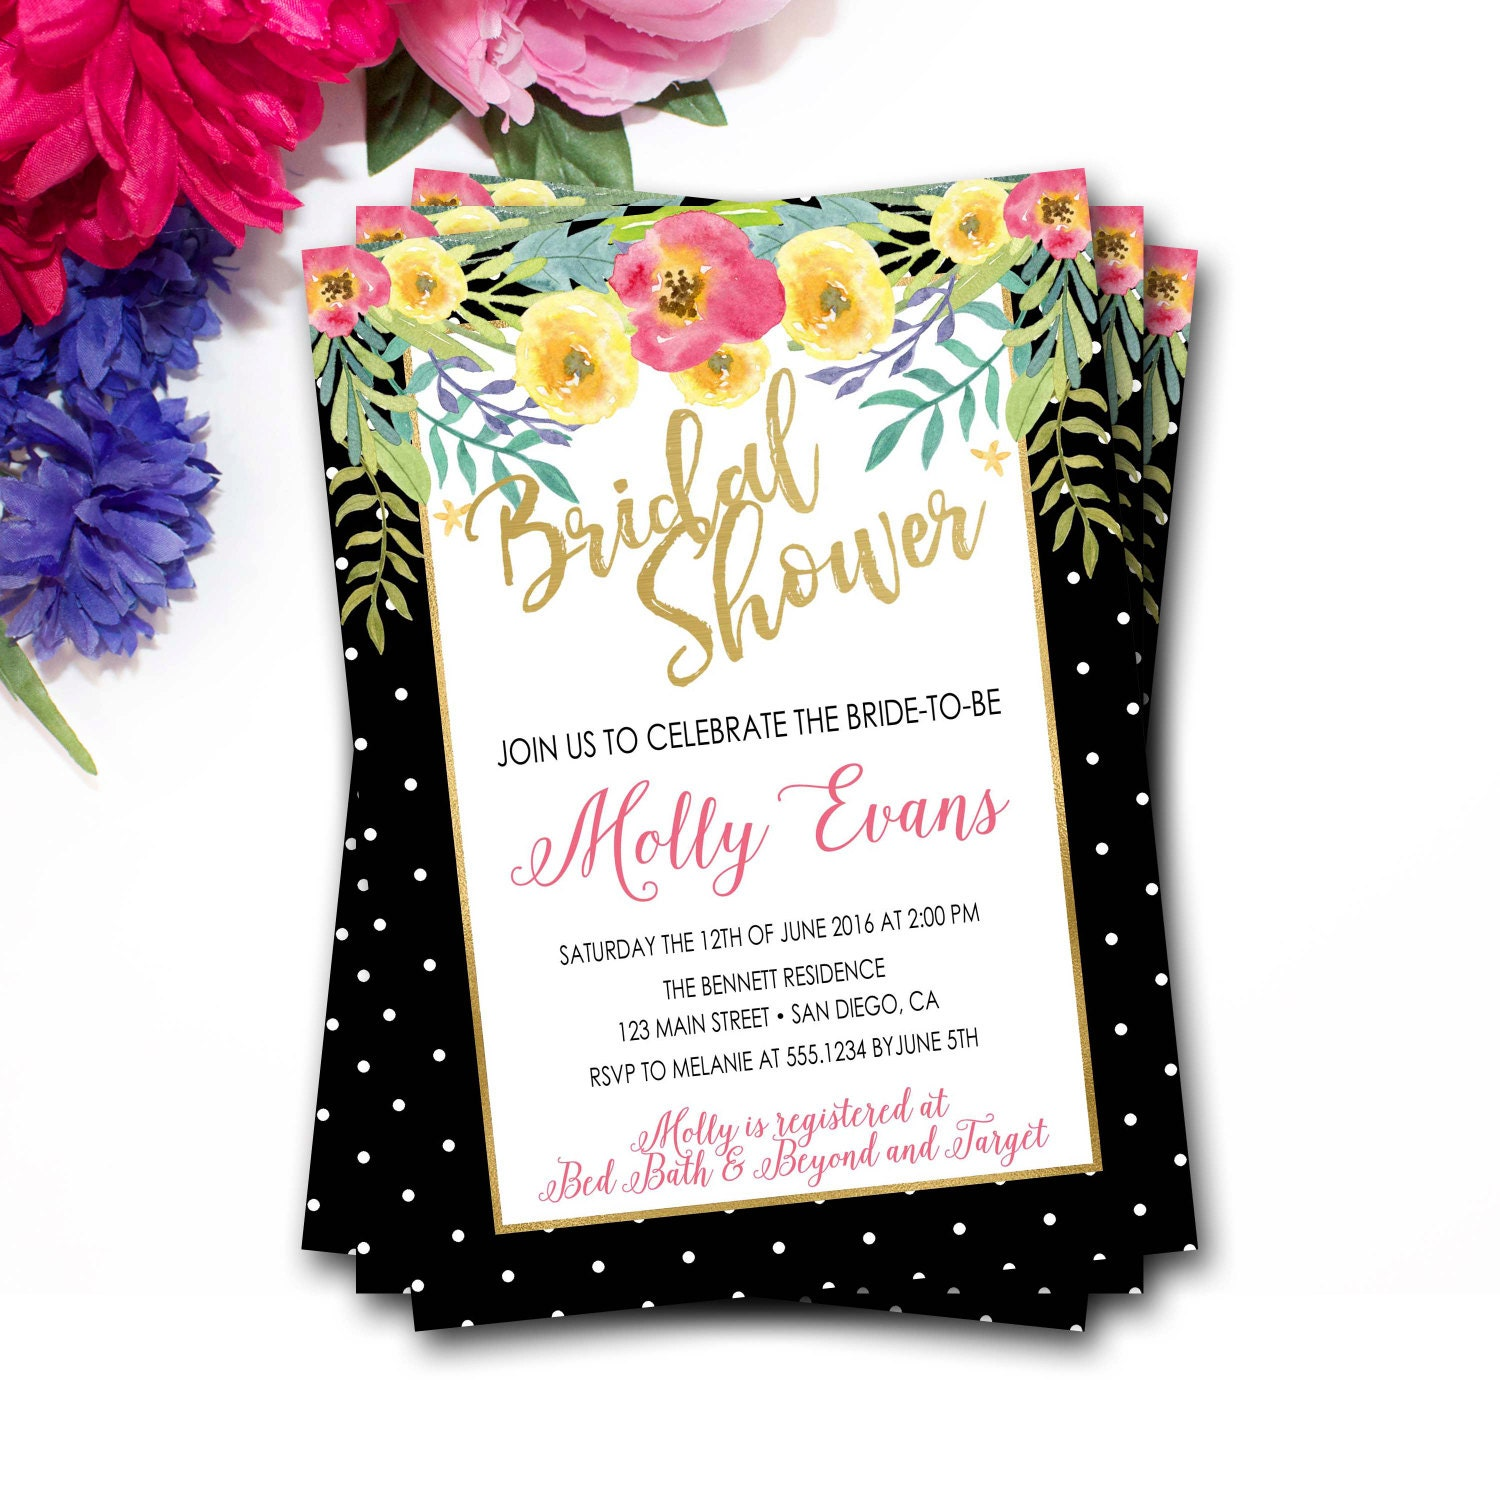 Tropical floral bridal shower invitation flower bridal shower tropical floral bridal shower invitation flower bridal shower invitation tropical bridal shower invitation watercolor floral invitation filmwisefo